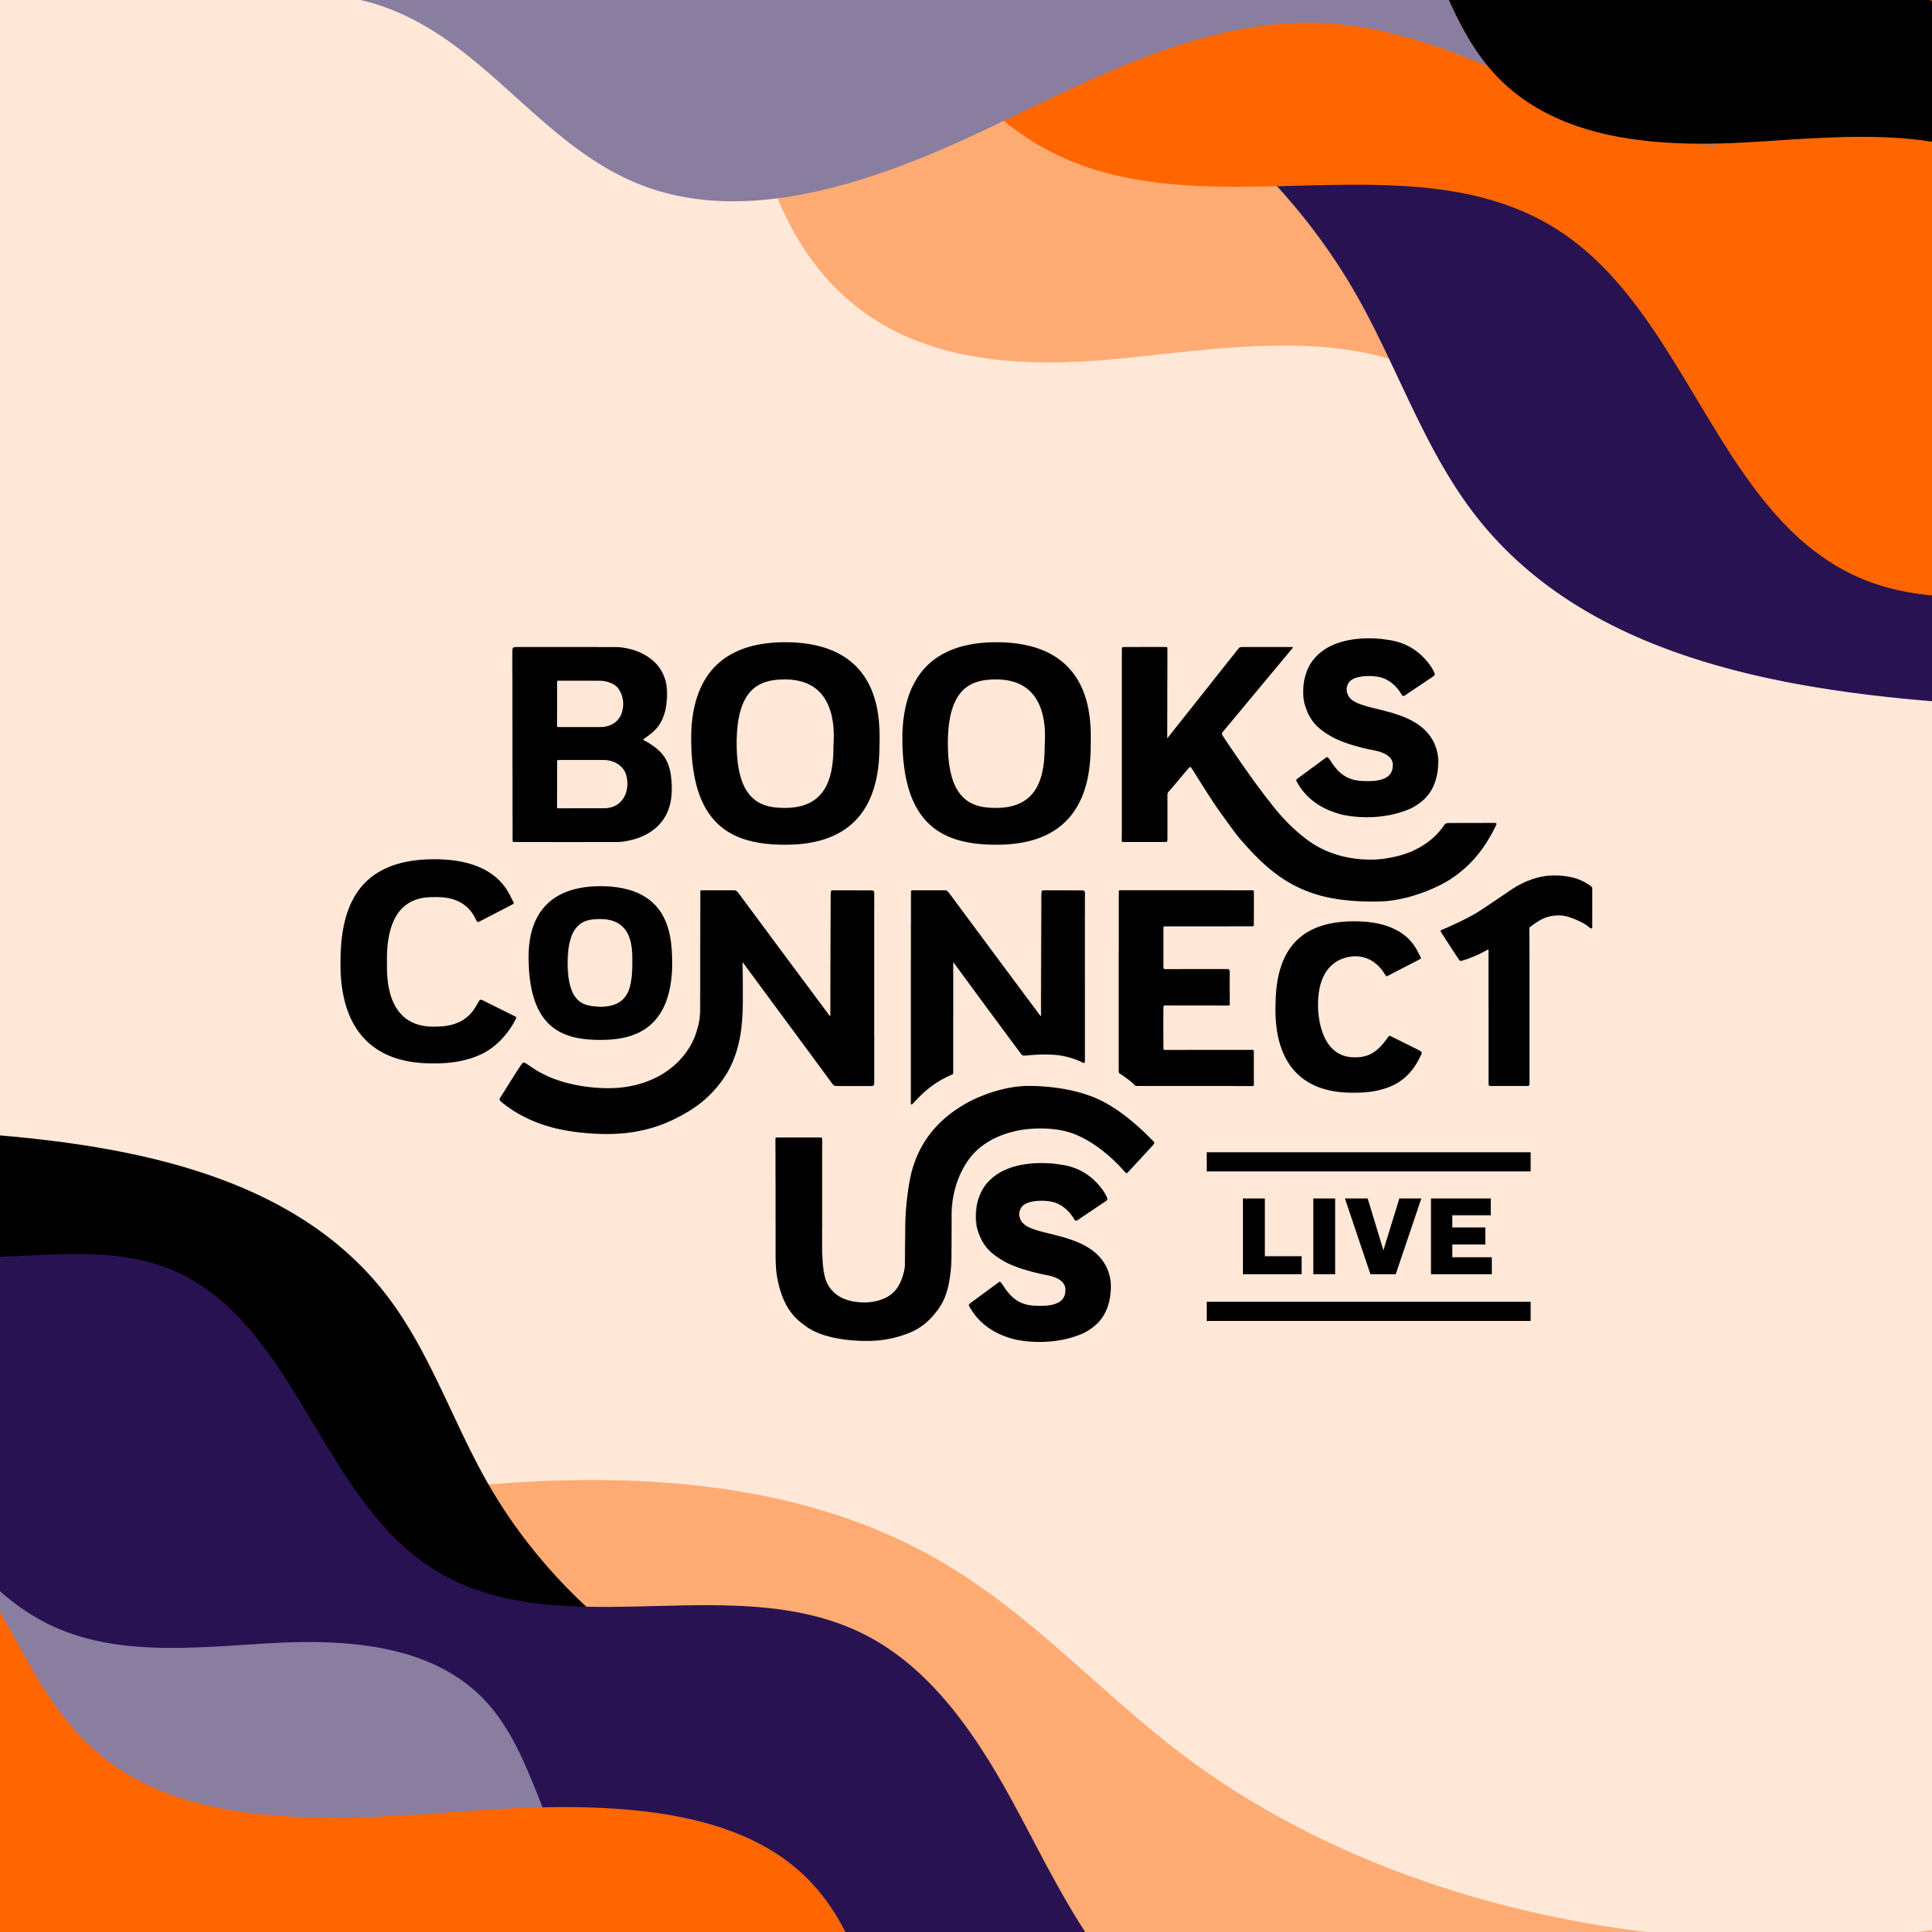 Books Connect Us Live 9/7-9/20